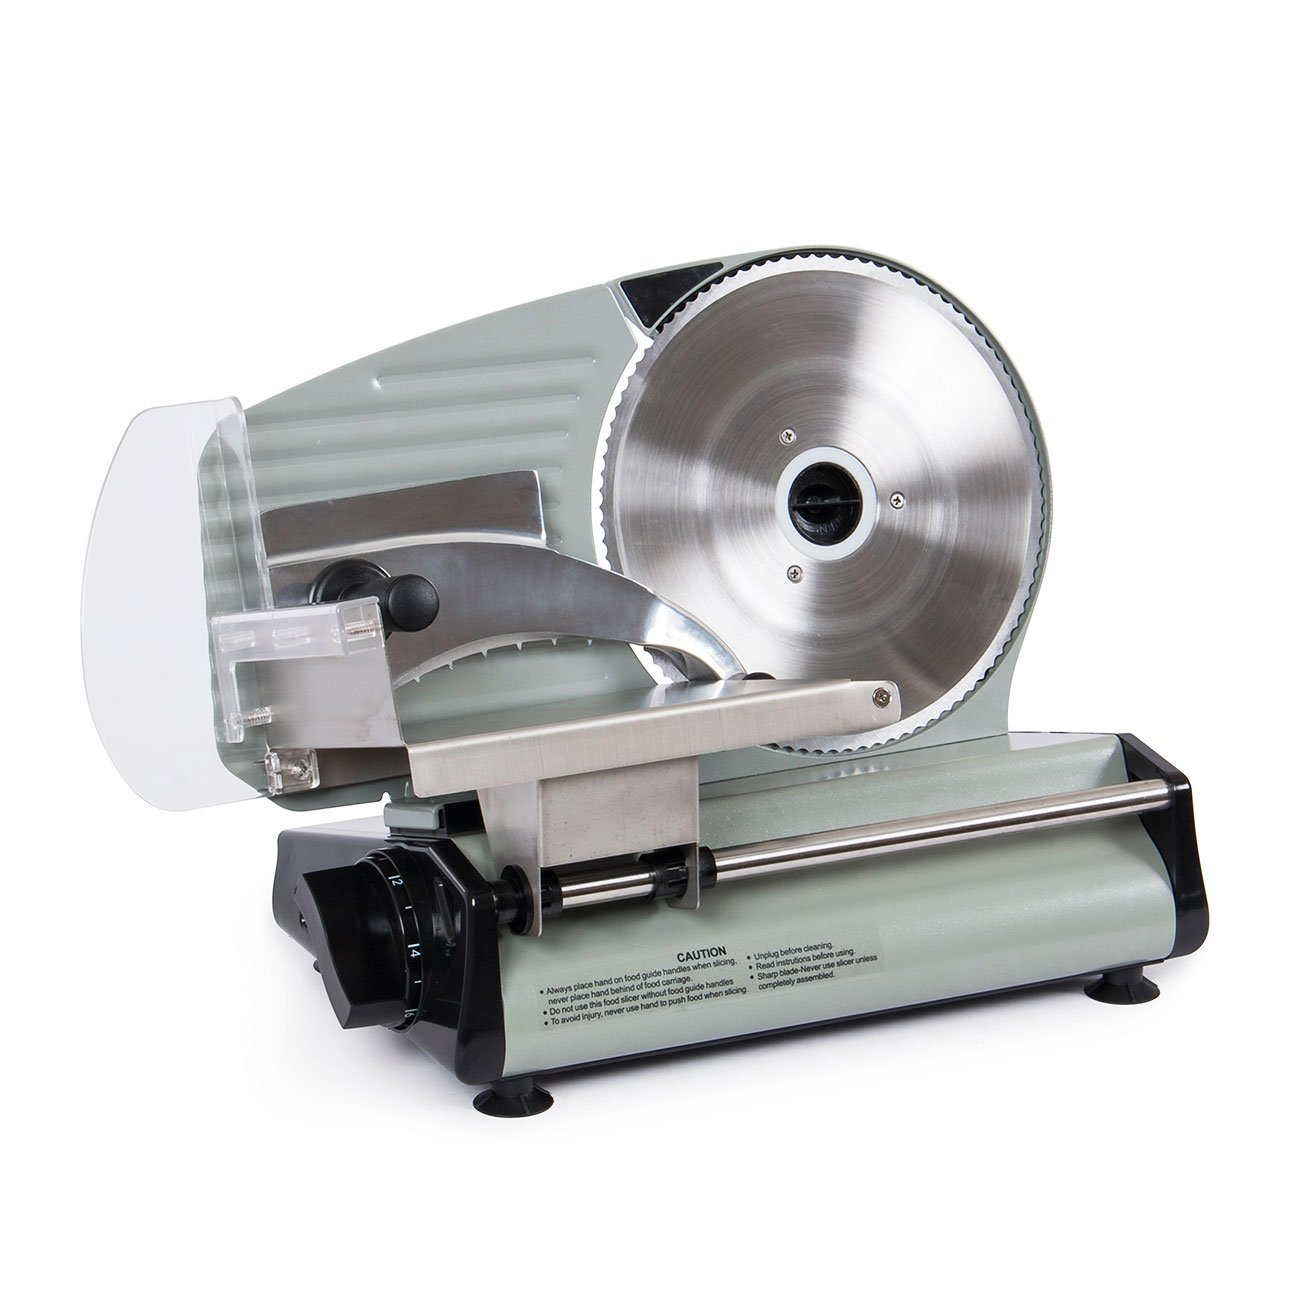 Arksen 8.7 inch Electric Deli Meat Slicer